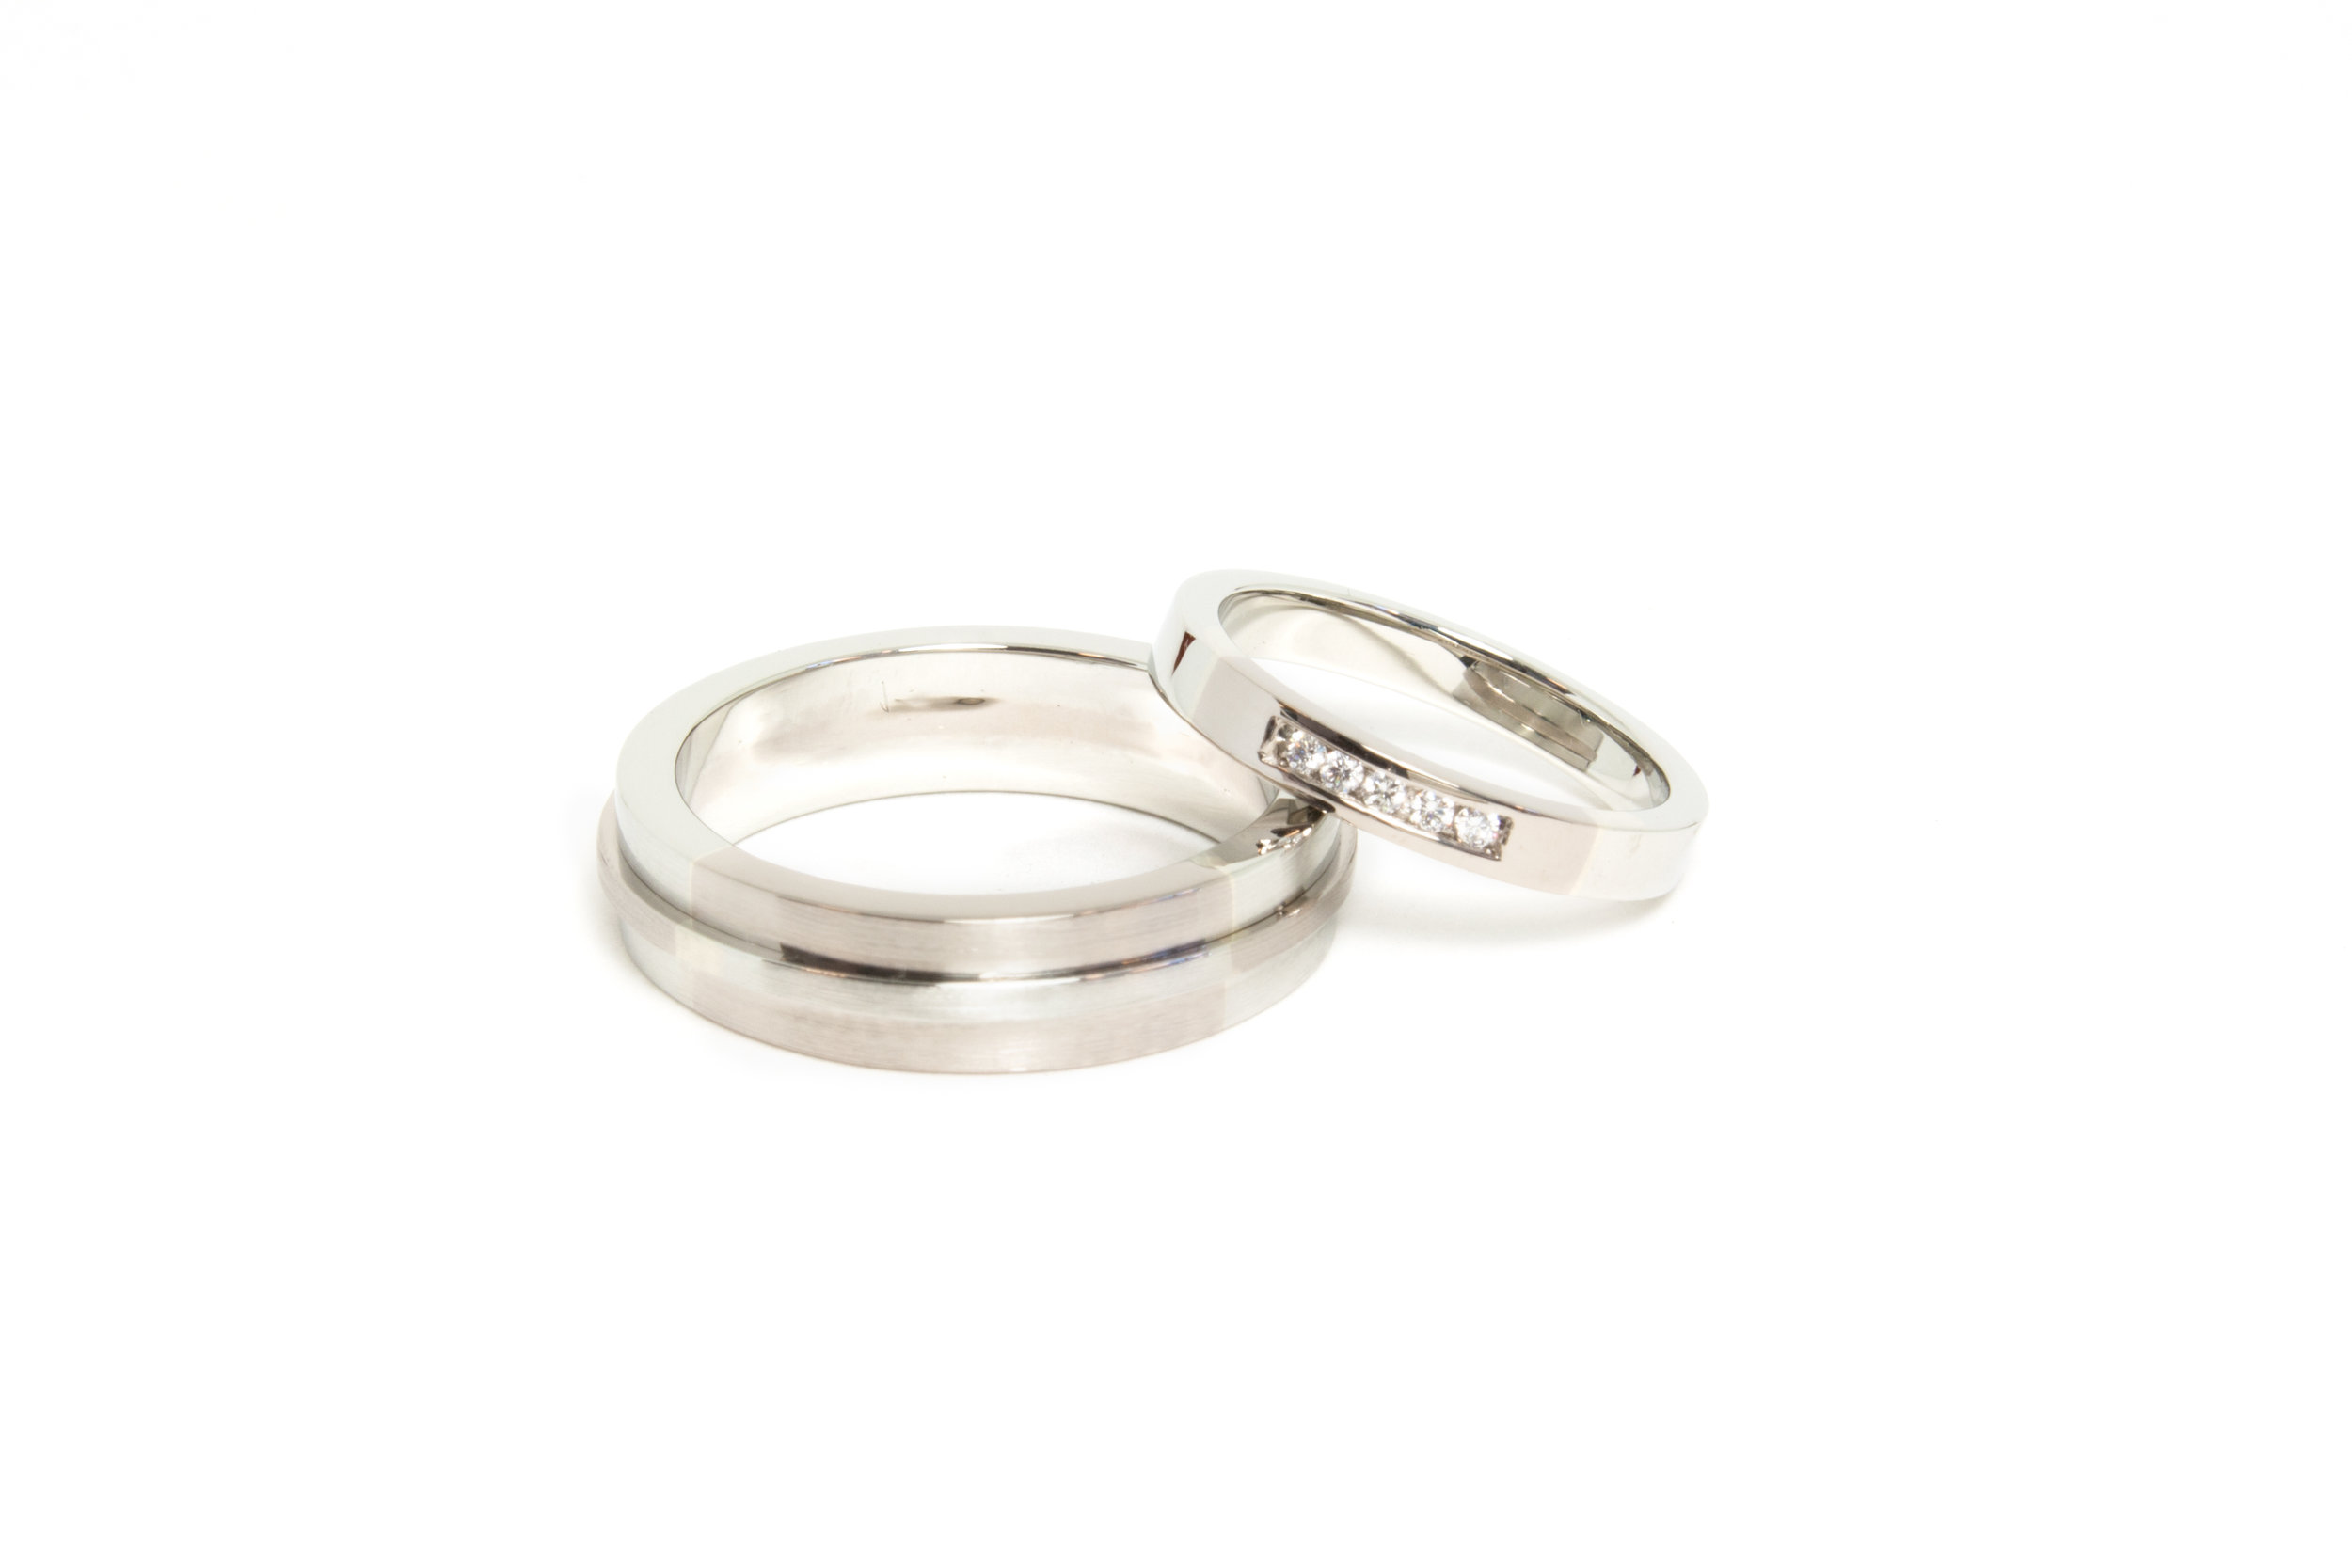 Wedding Bands in 18kt Palladium White Gold and 18kt Gold, with channel set diamonds.